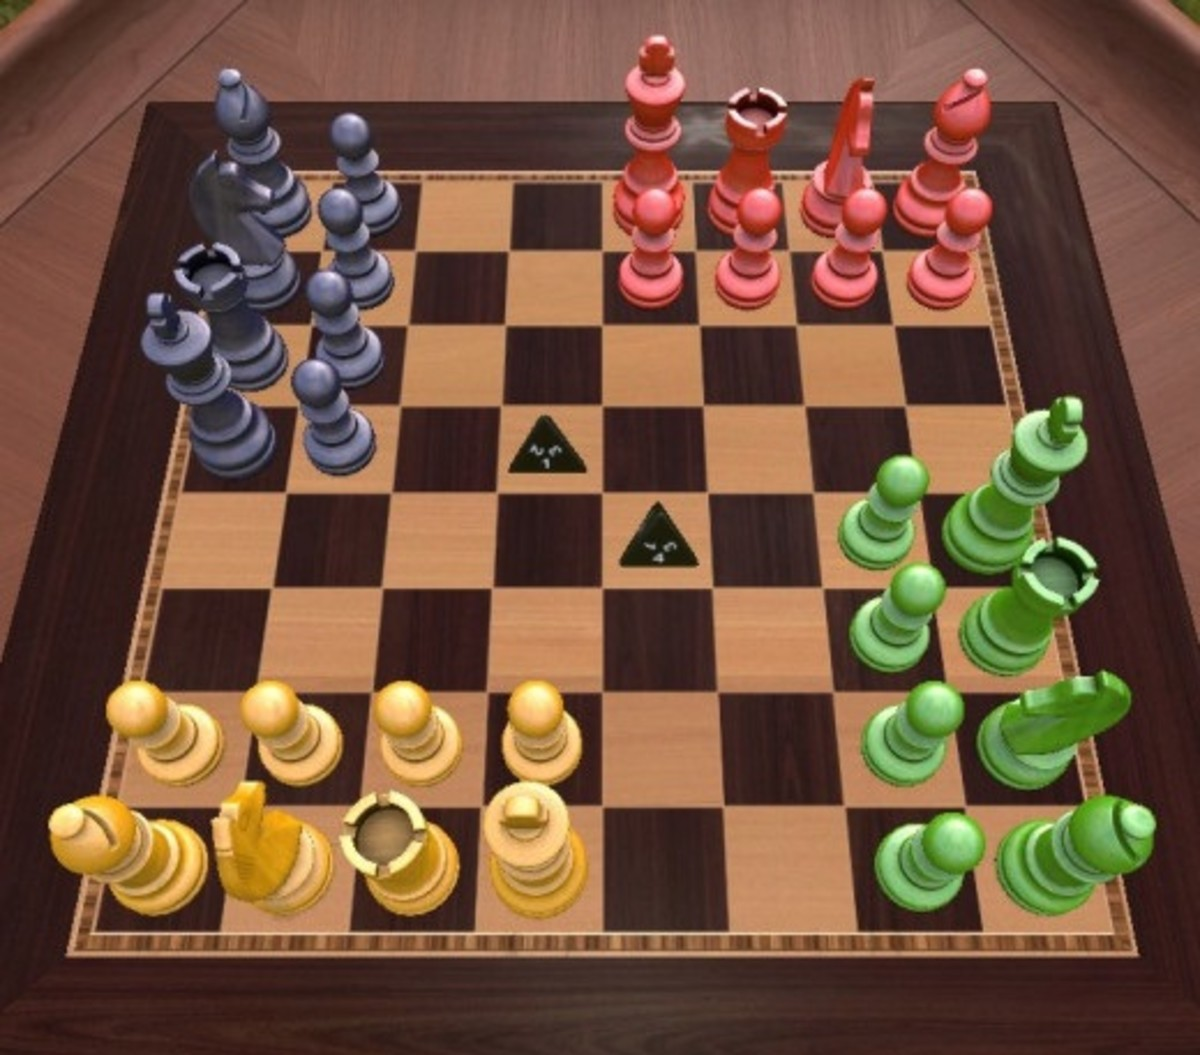 Four-player Chaturaji chess variant